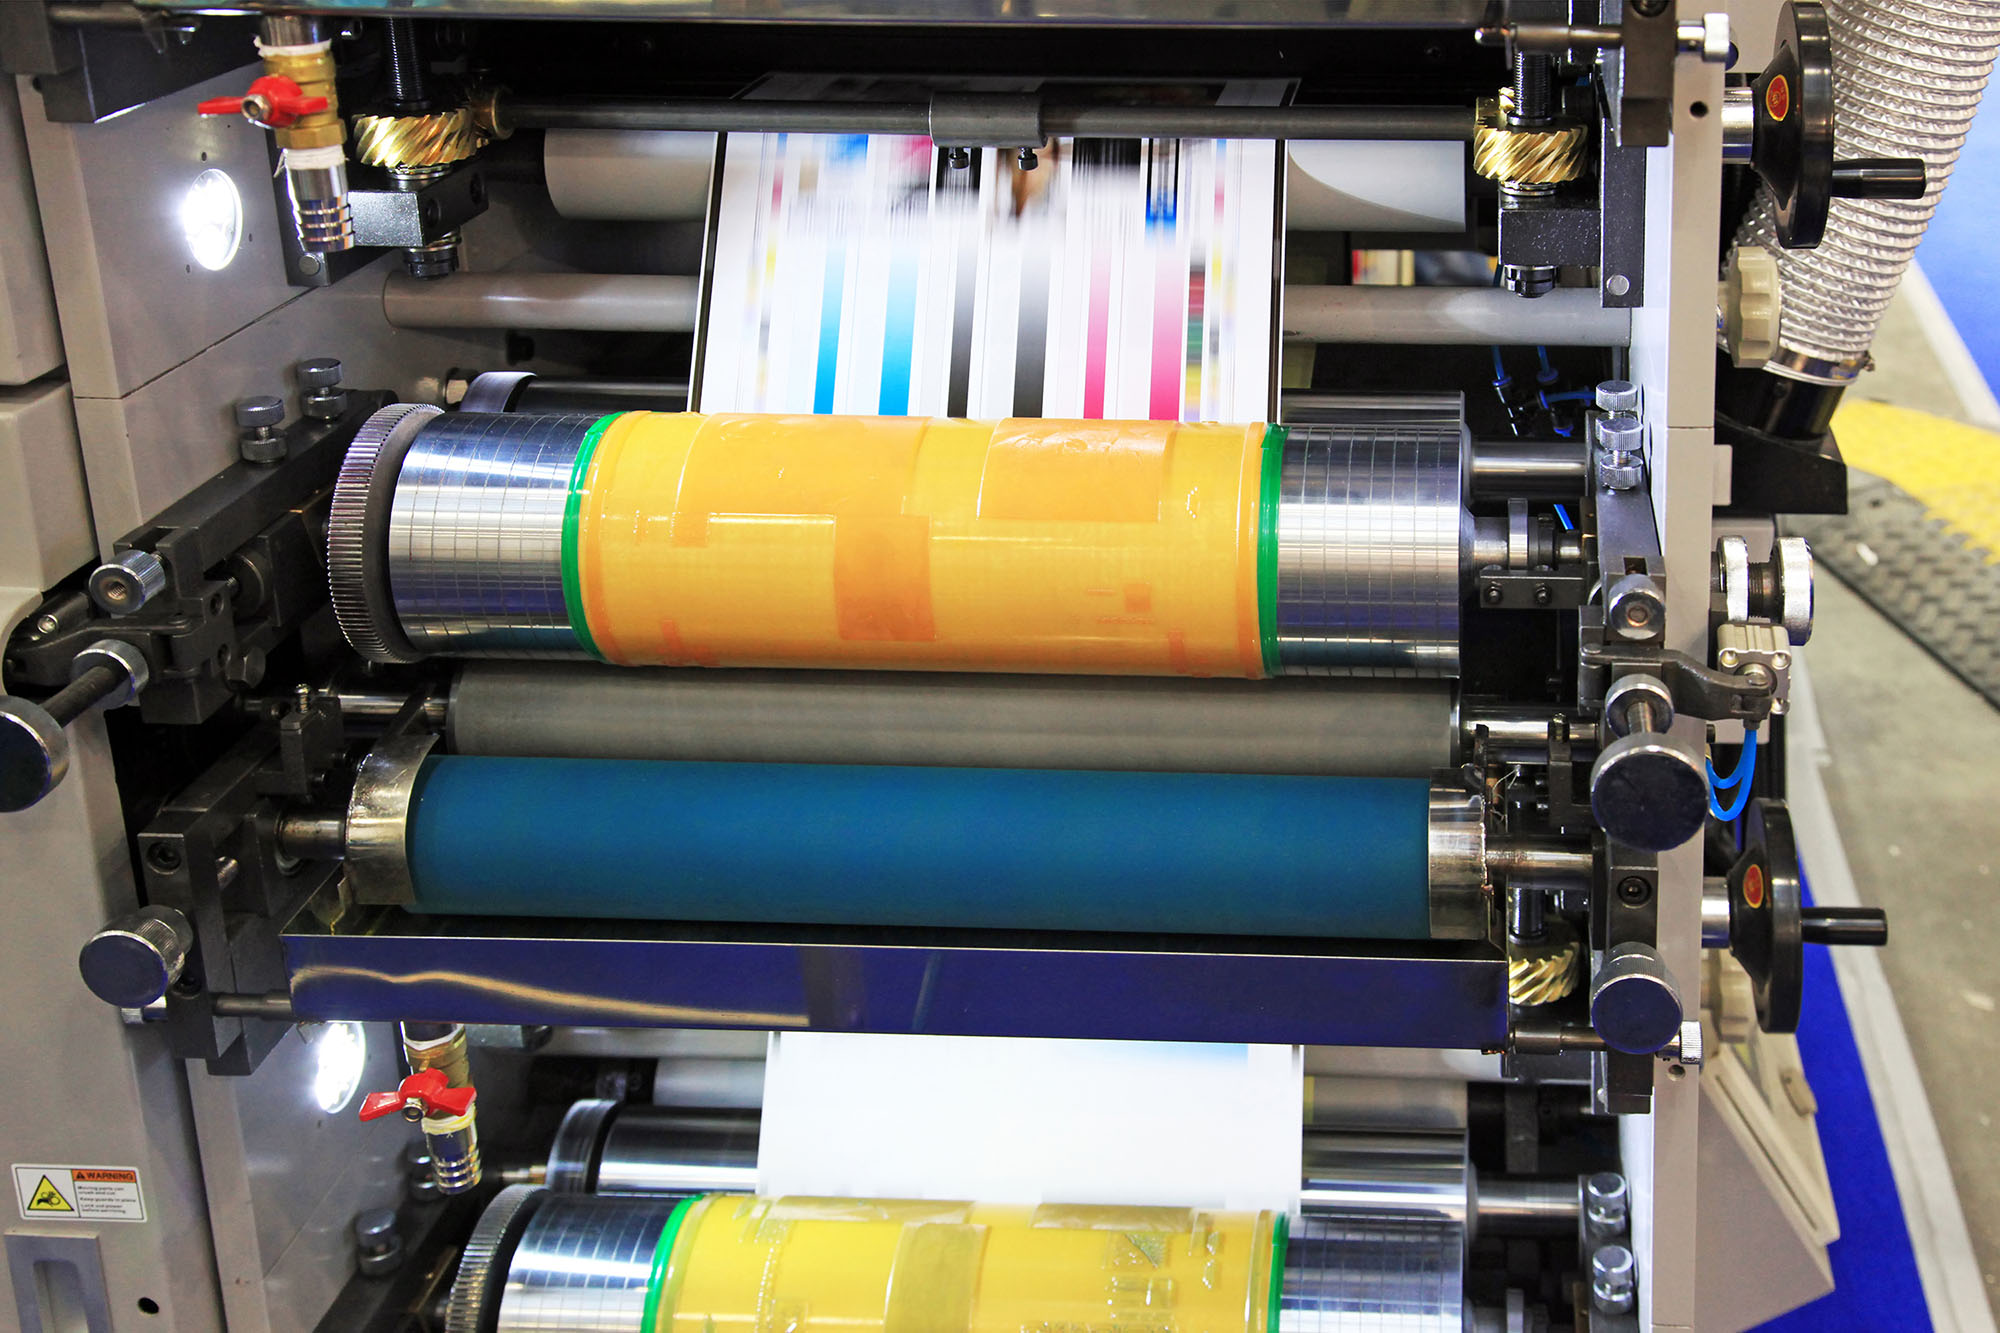 manufacturer of machines that print on flexible materials participates in an asset based loan